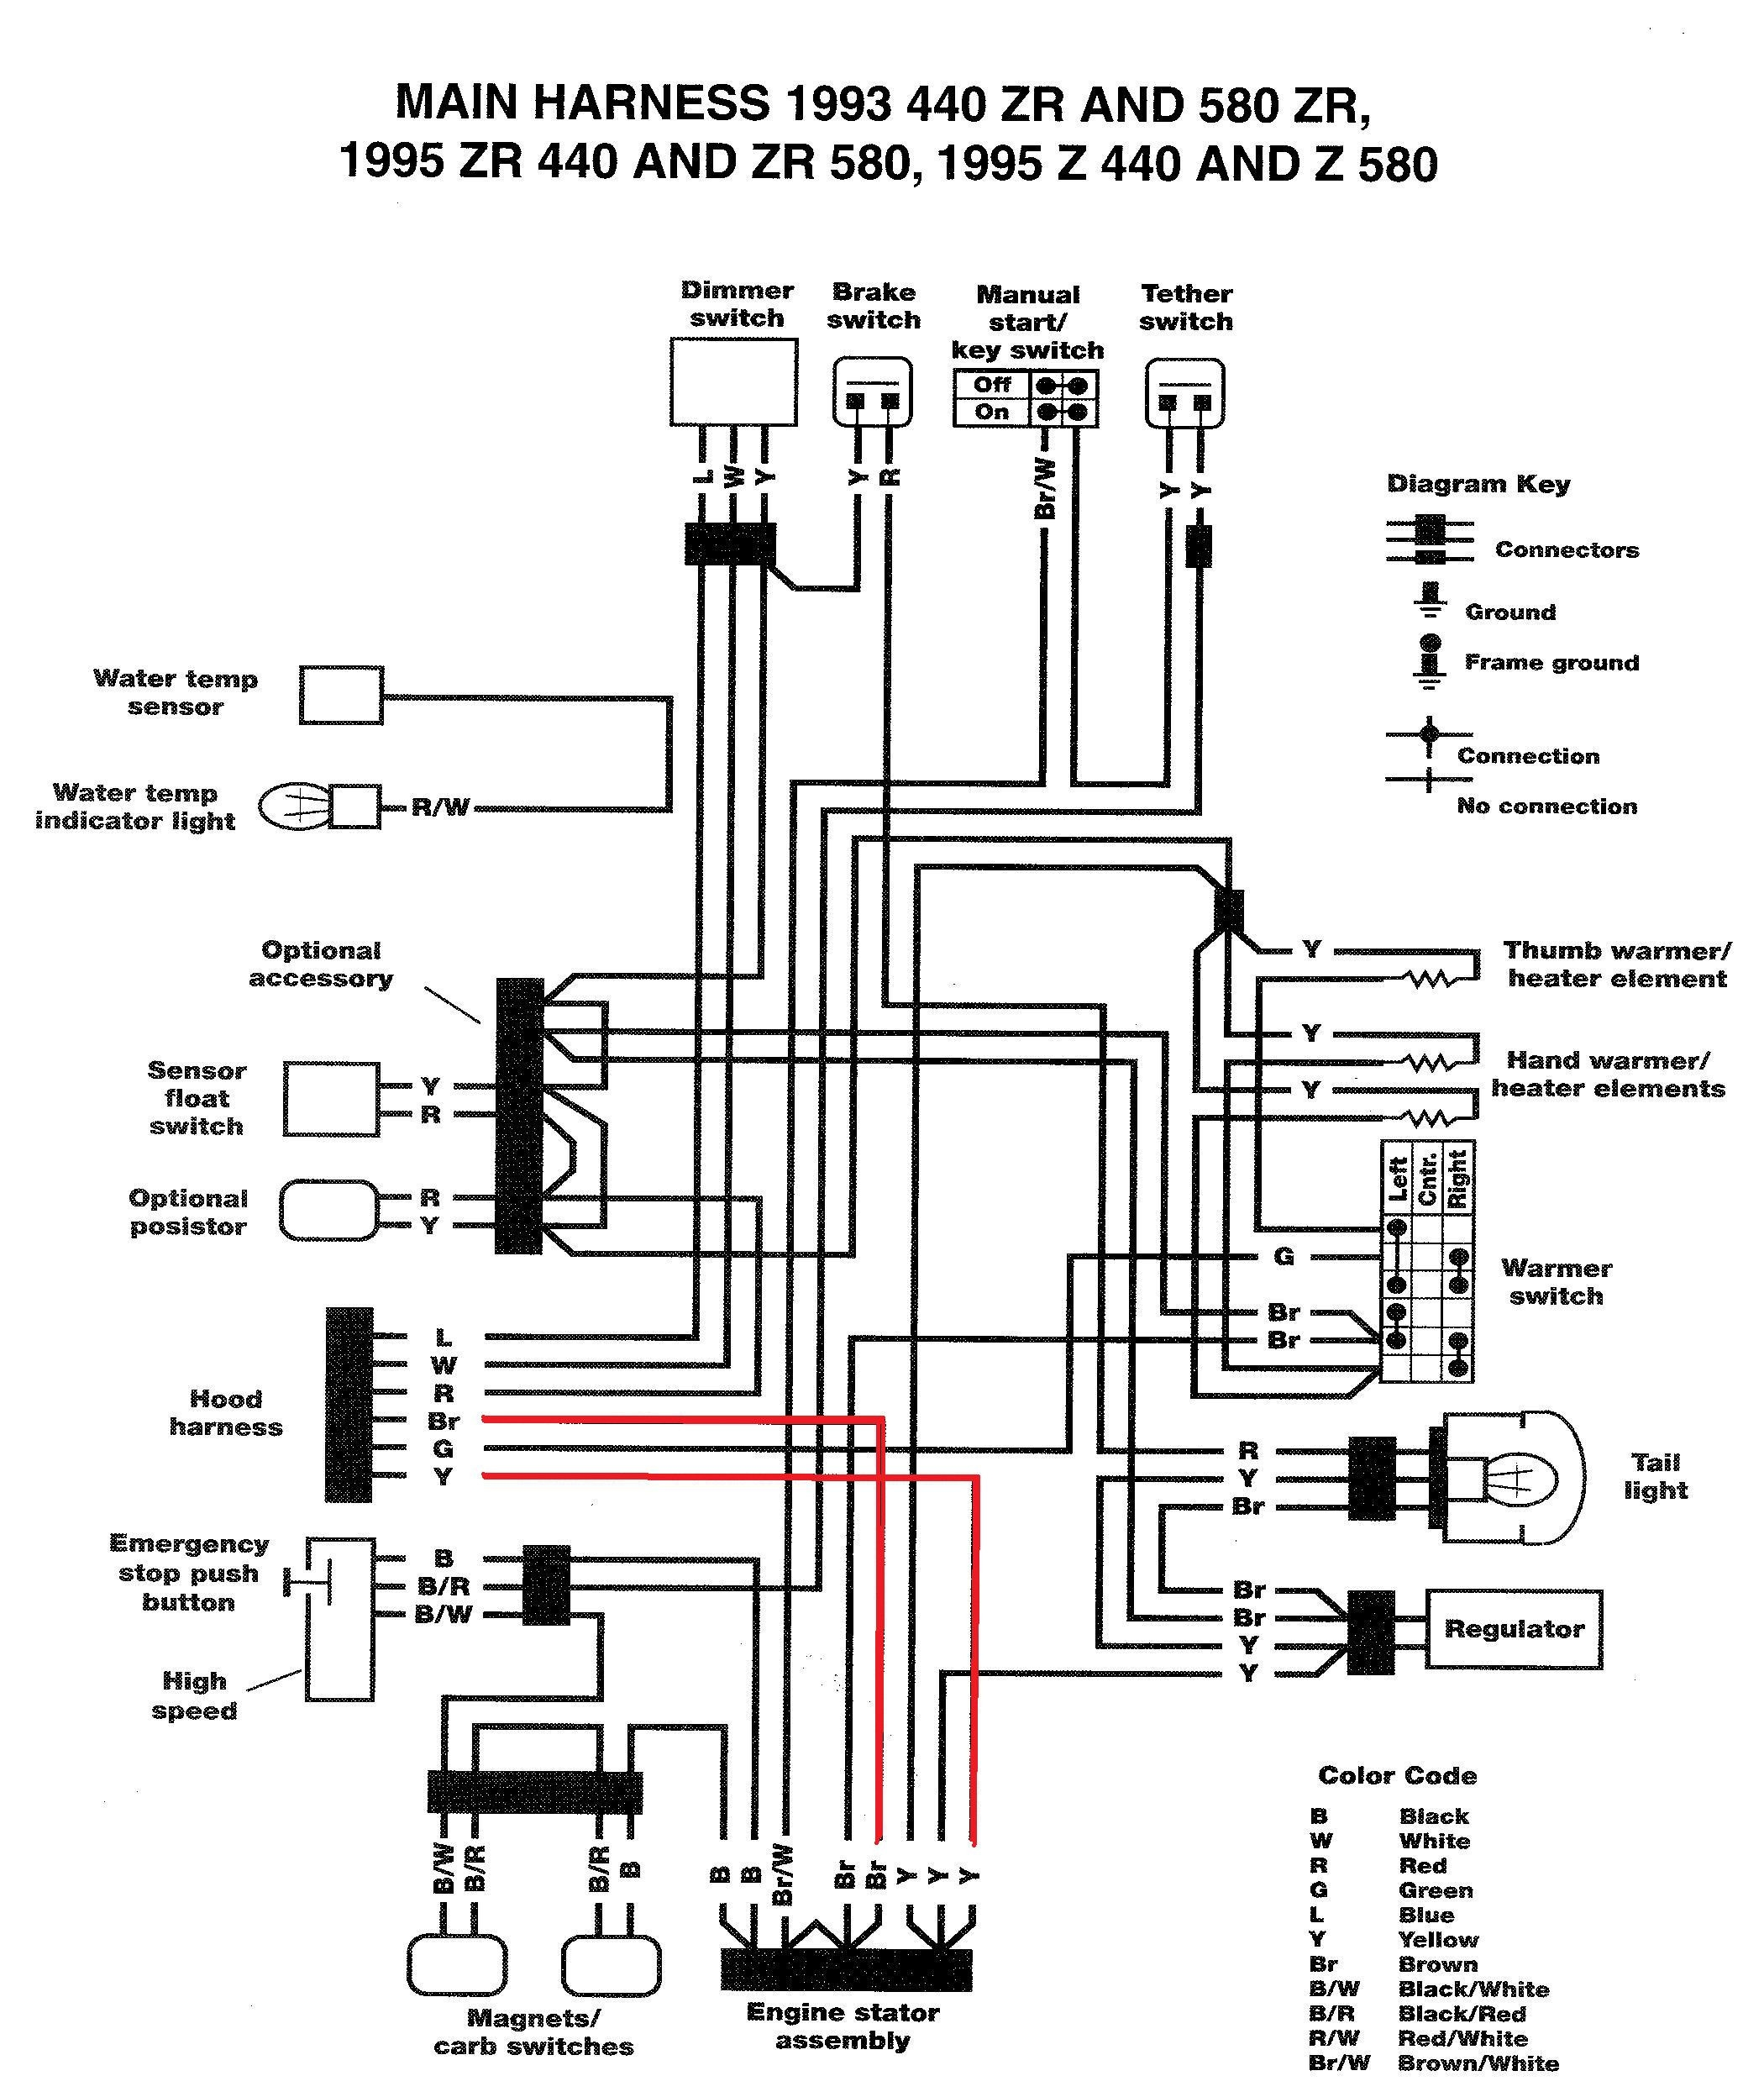 yamaha 600 wiring diagram wiring diagram center Yamaha Snowmobile Wiring Diagrams